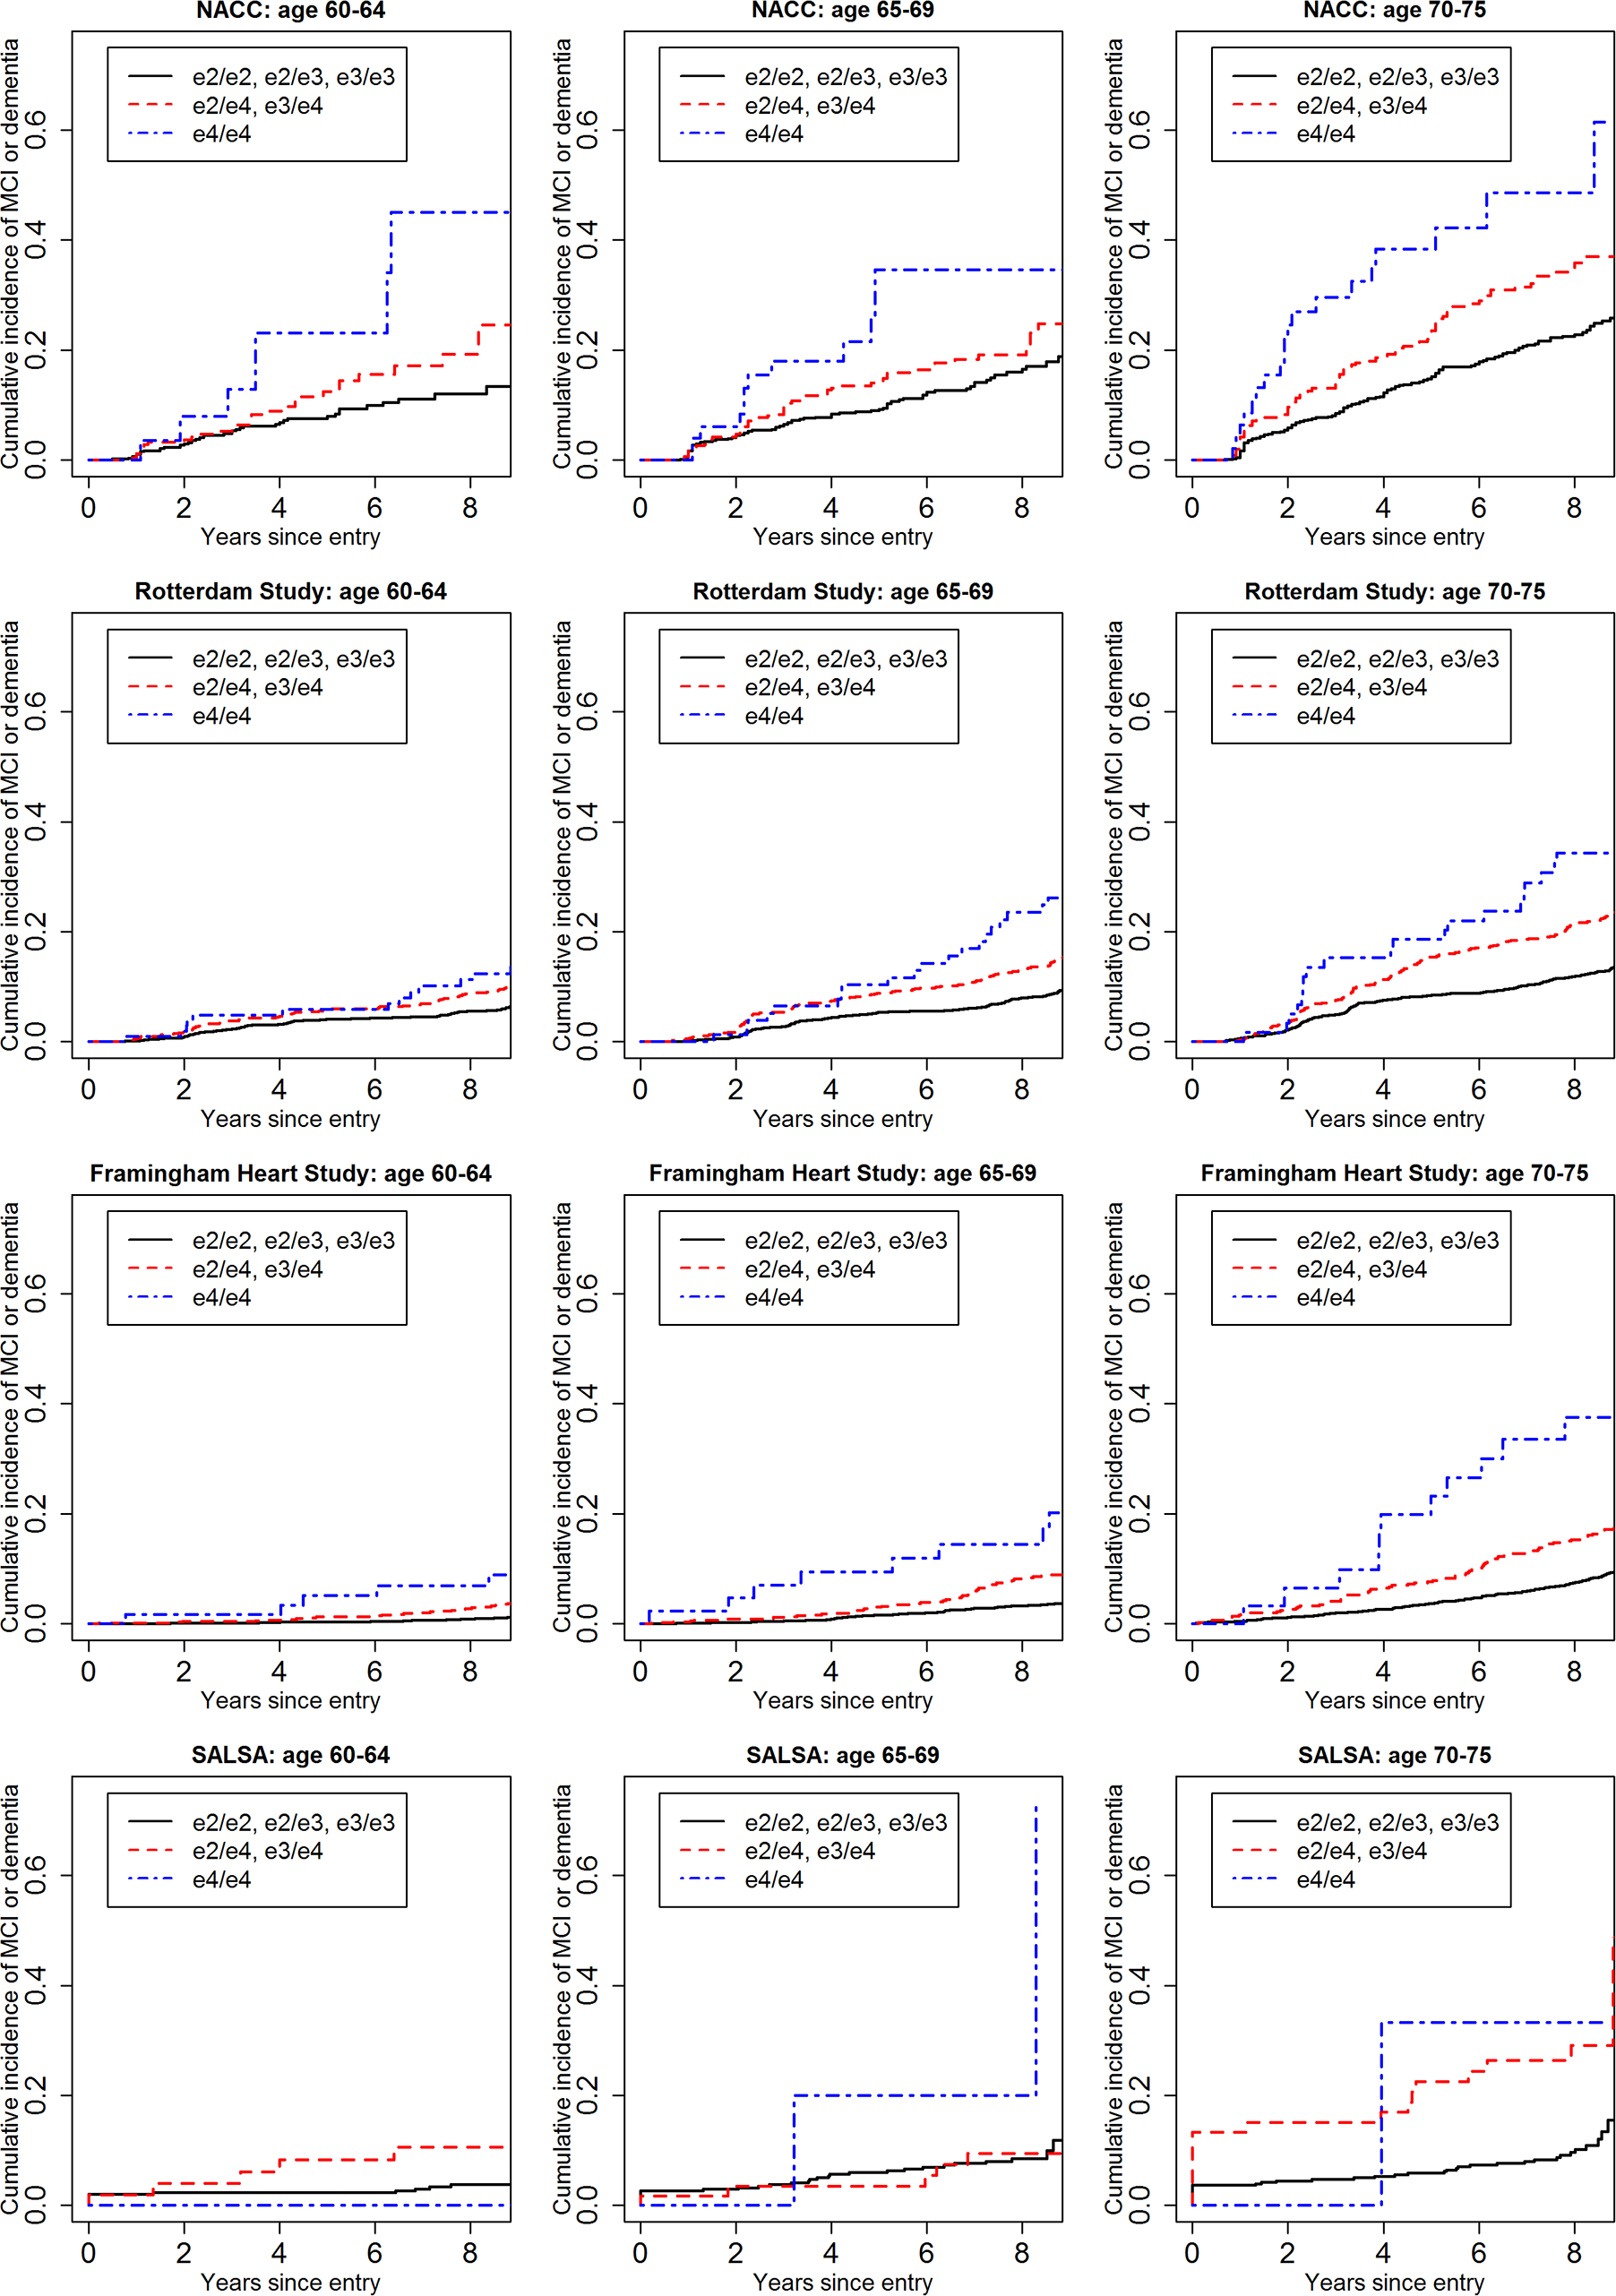 Cumulative incidence curves, adjusting for competing risk of mortality, for mild cognitive impairment or dementia by baseline age and <i>APOE</i>-e4 dose.